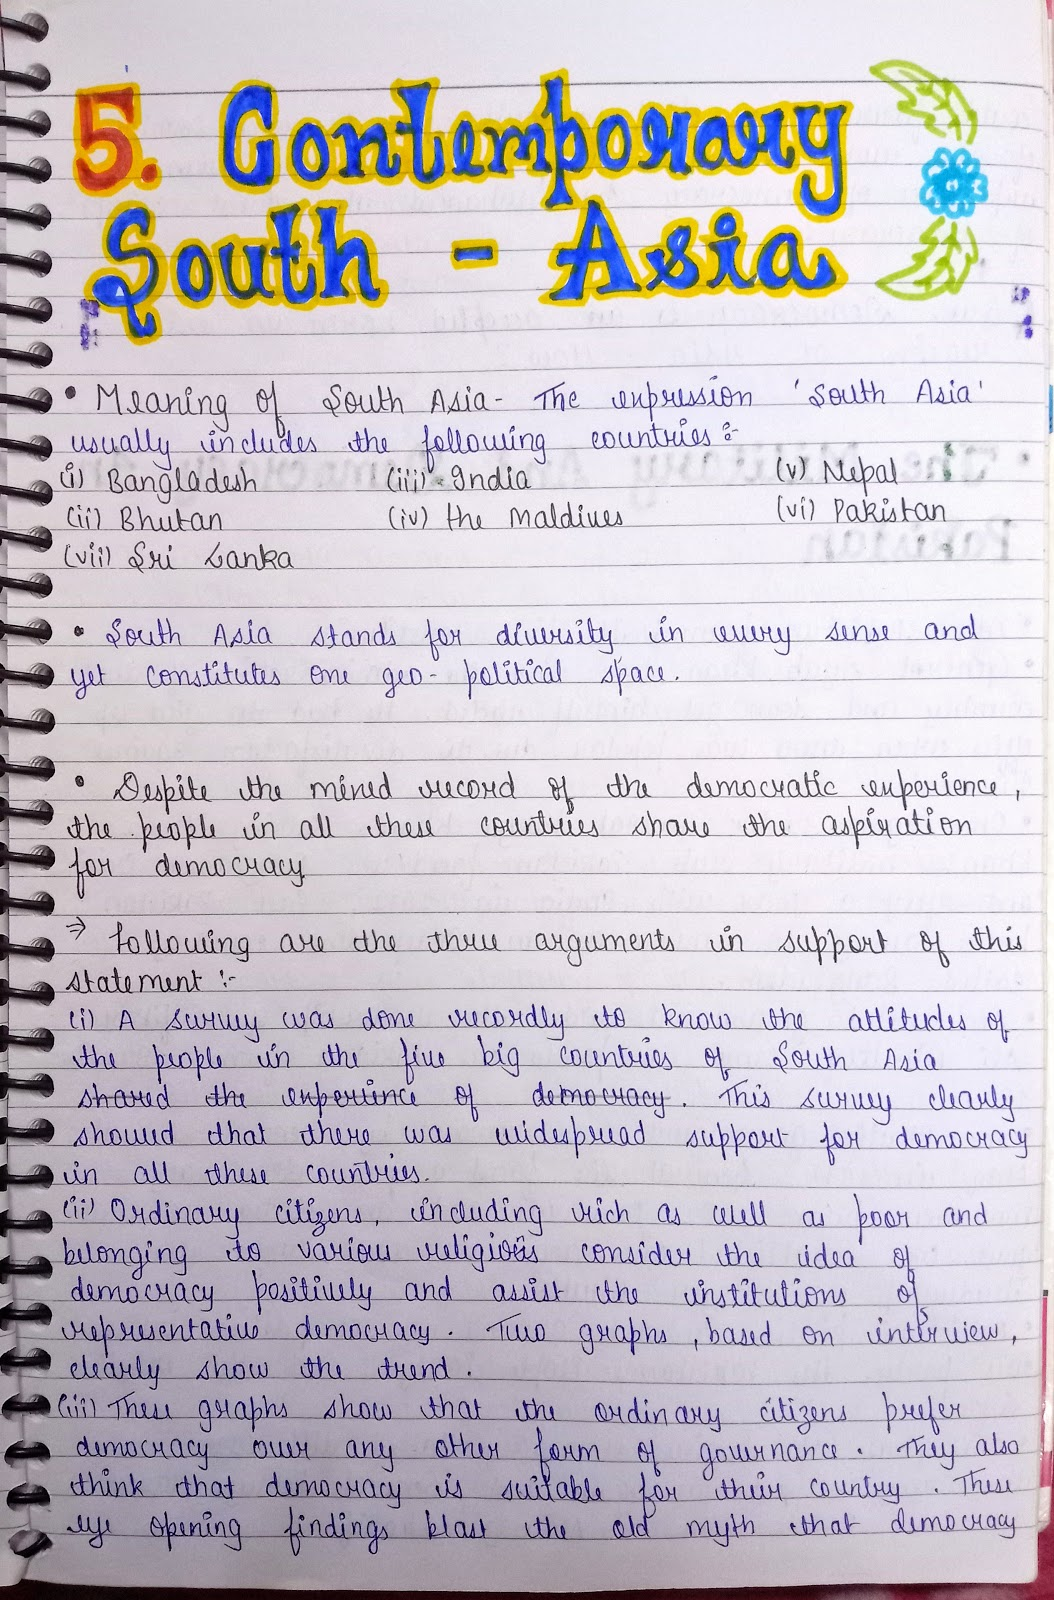 notes science political class handwritten 12th humanities asia contemporary south